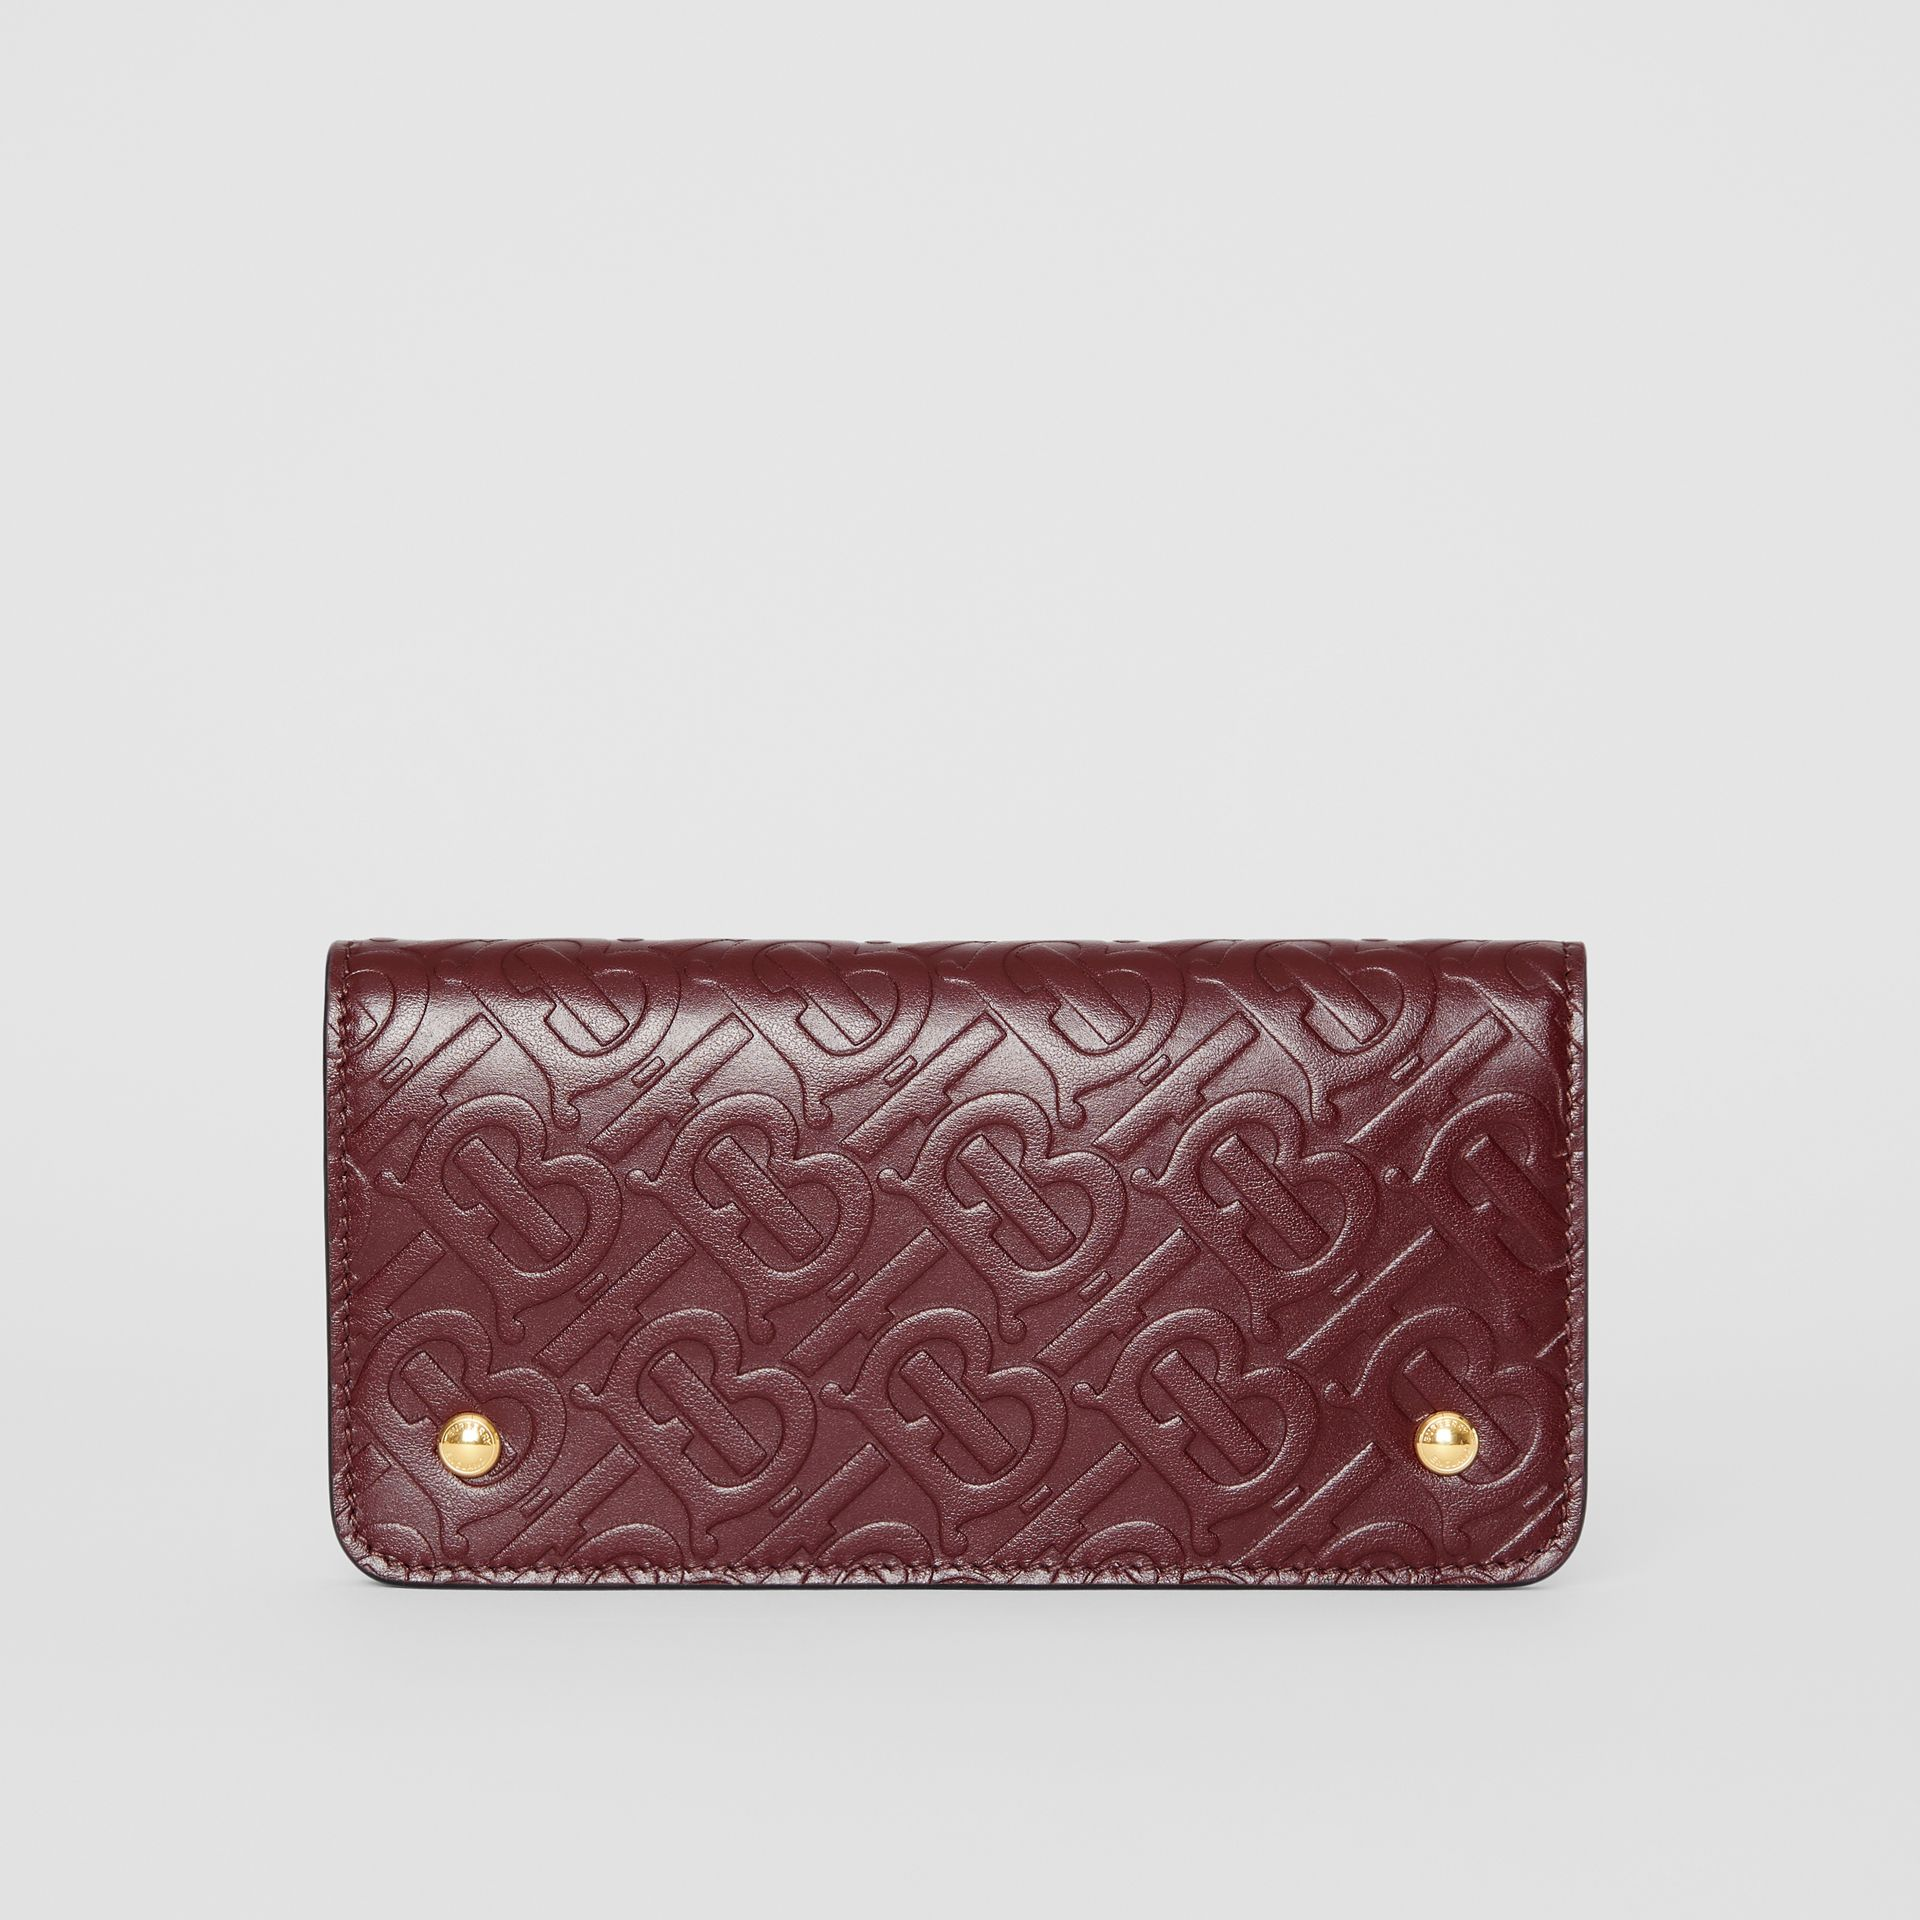 Monogram Leather Phone Wallet in Oxblood - Women | Burberry Singapore - gallery image 0